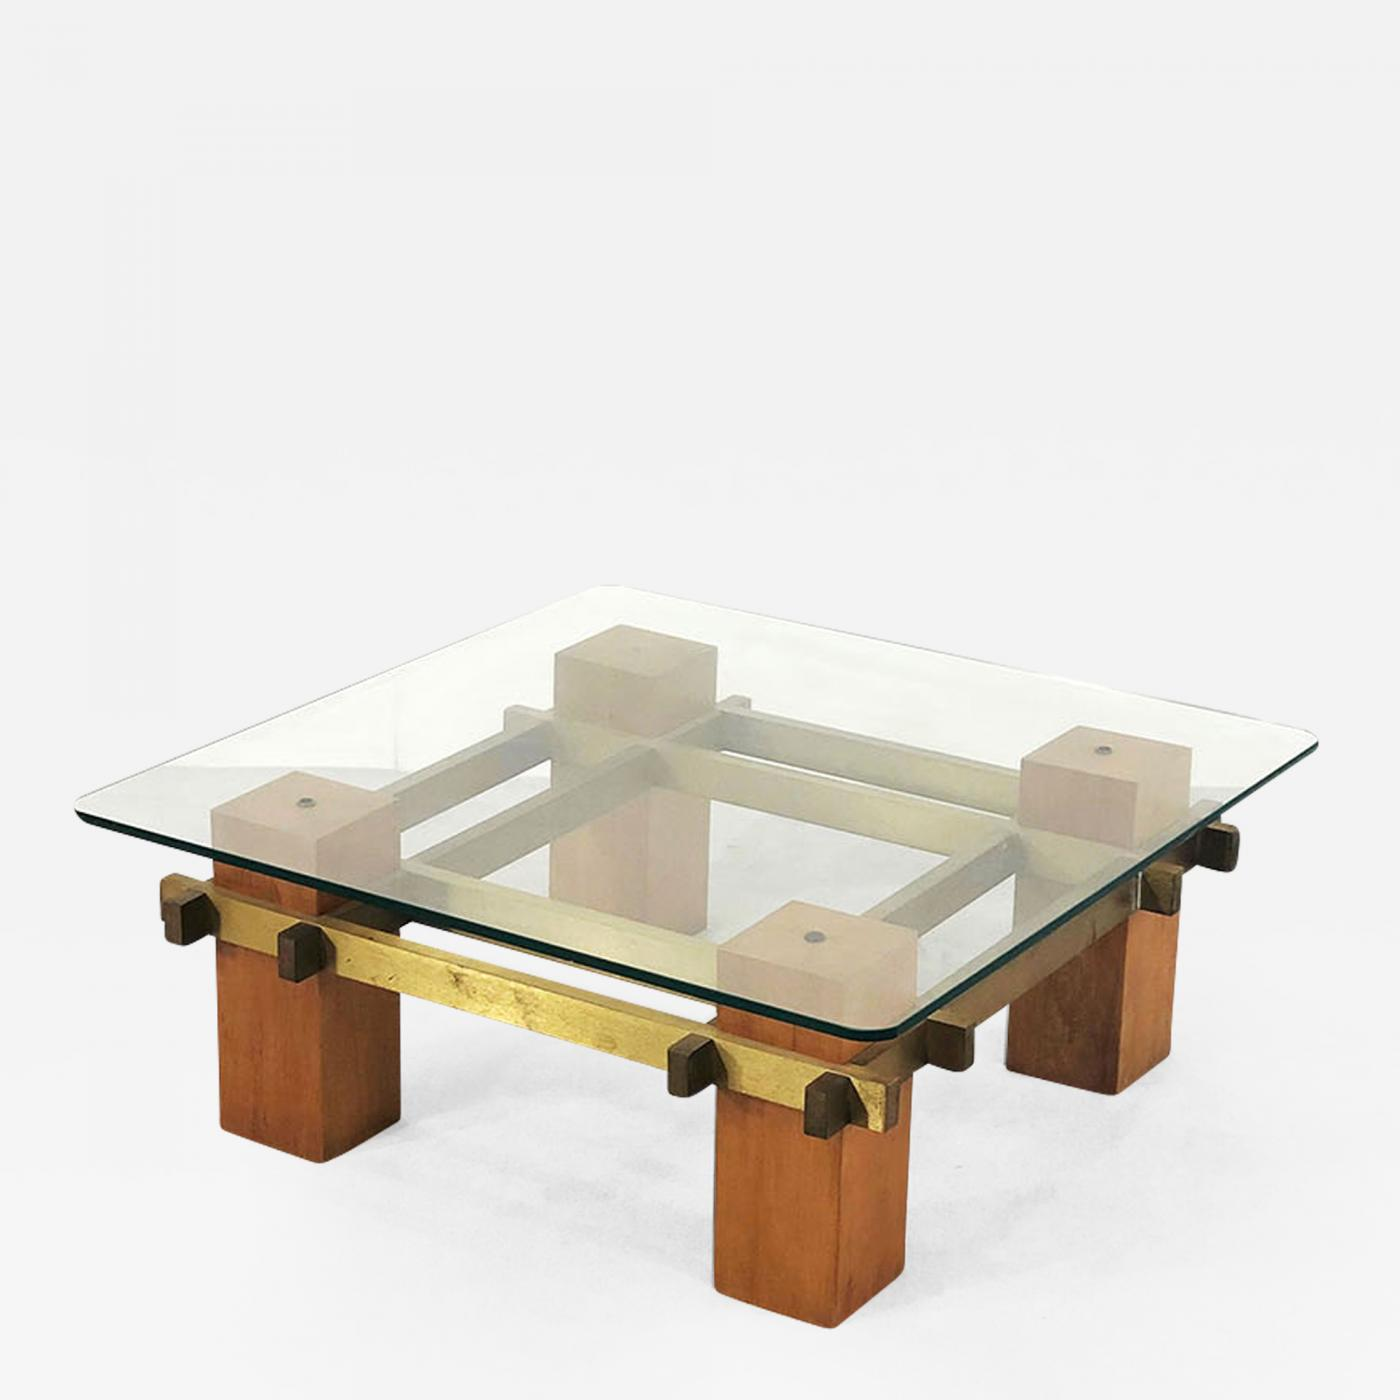 Brilliant Italian Coffee Table Produced In The 50S In Brass Wood And Crystal Glass Interior Design Ideas Clesiryabchikinfo